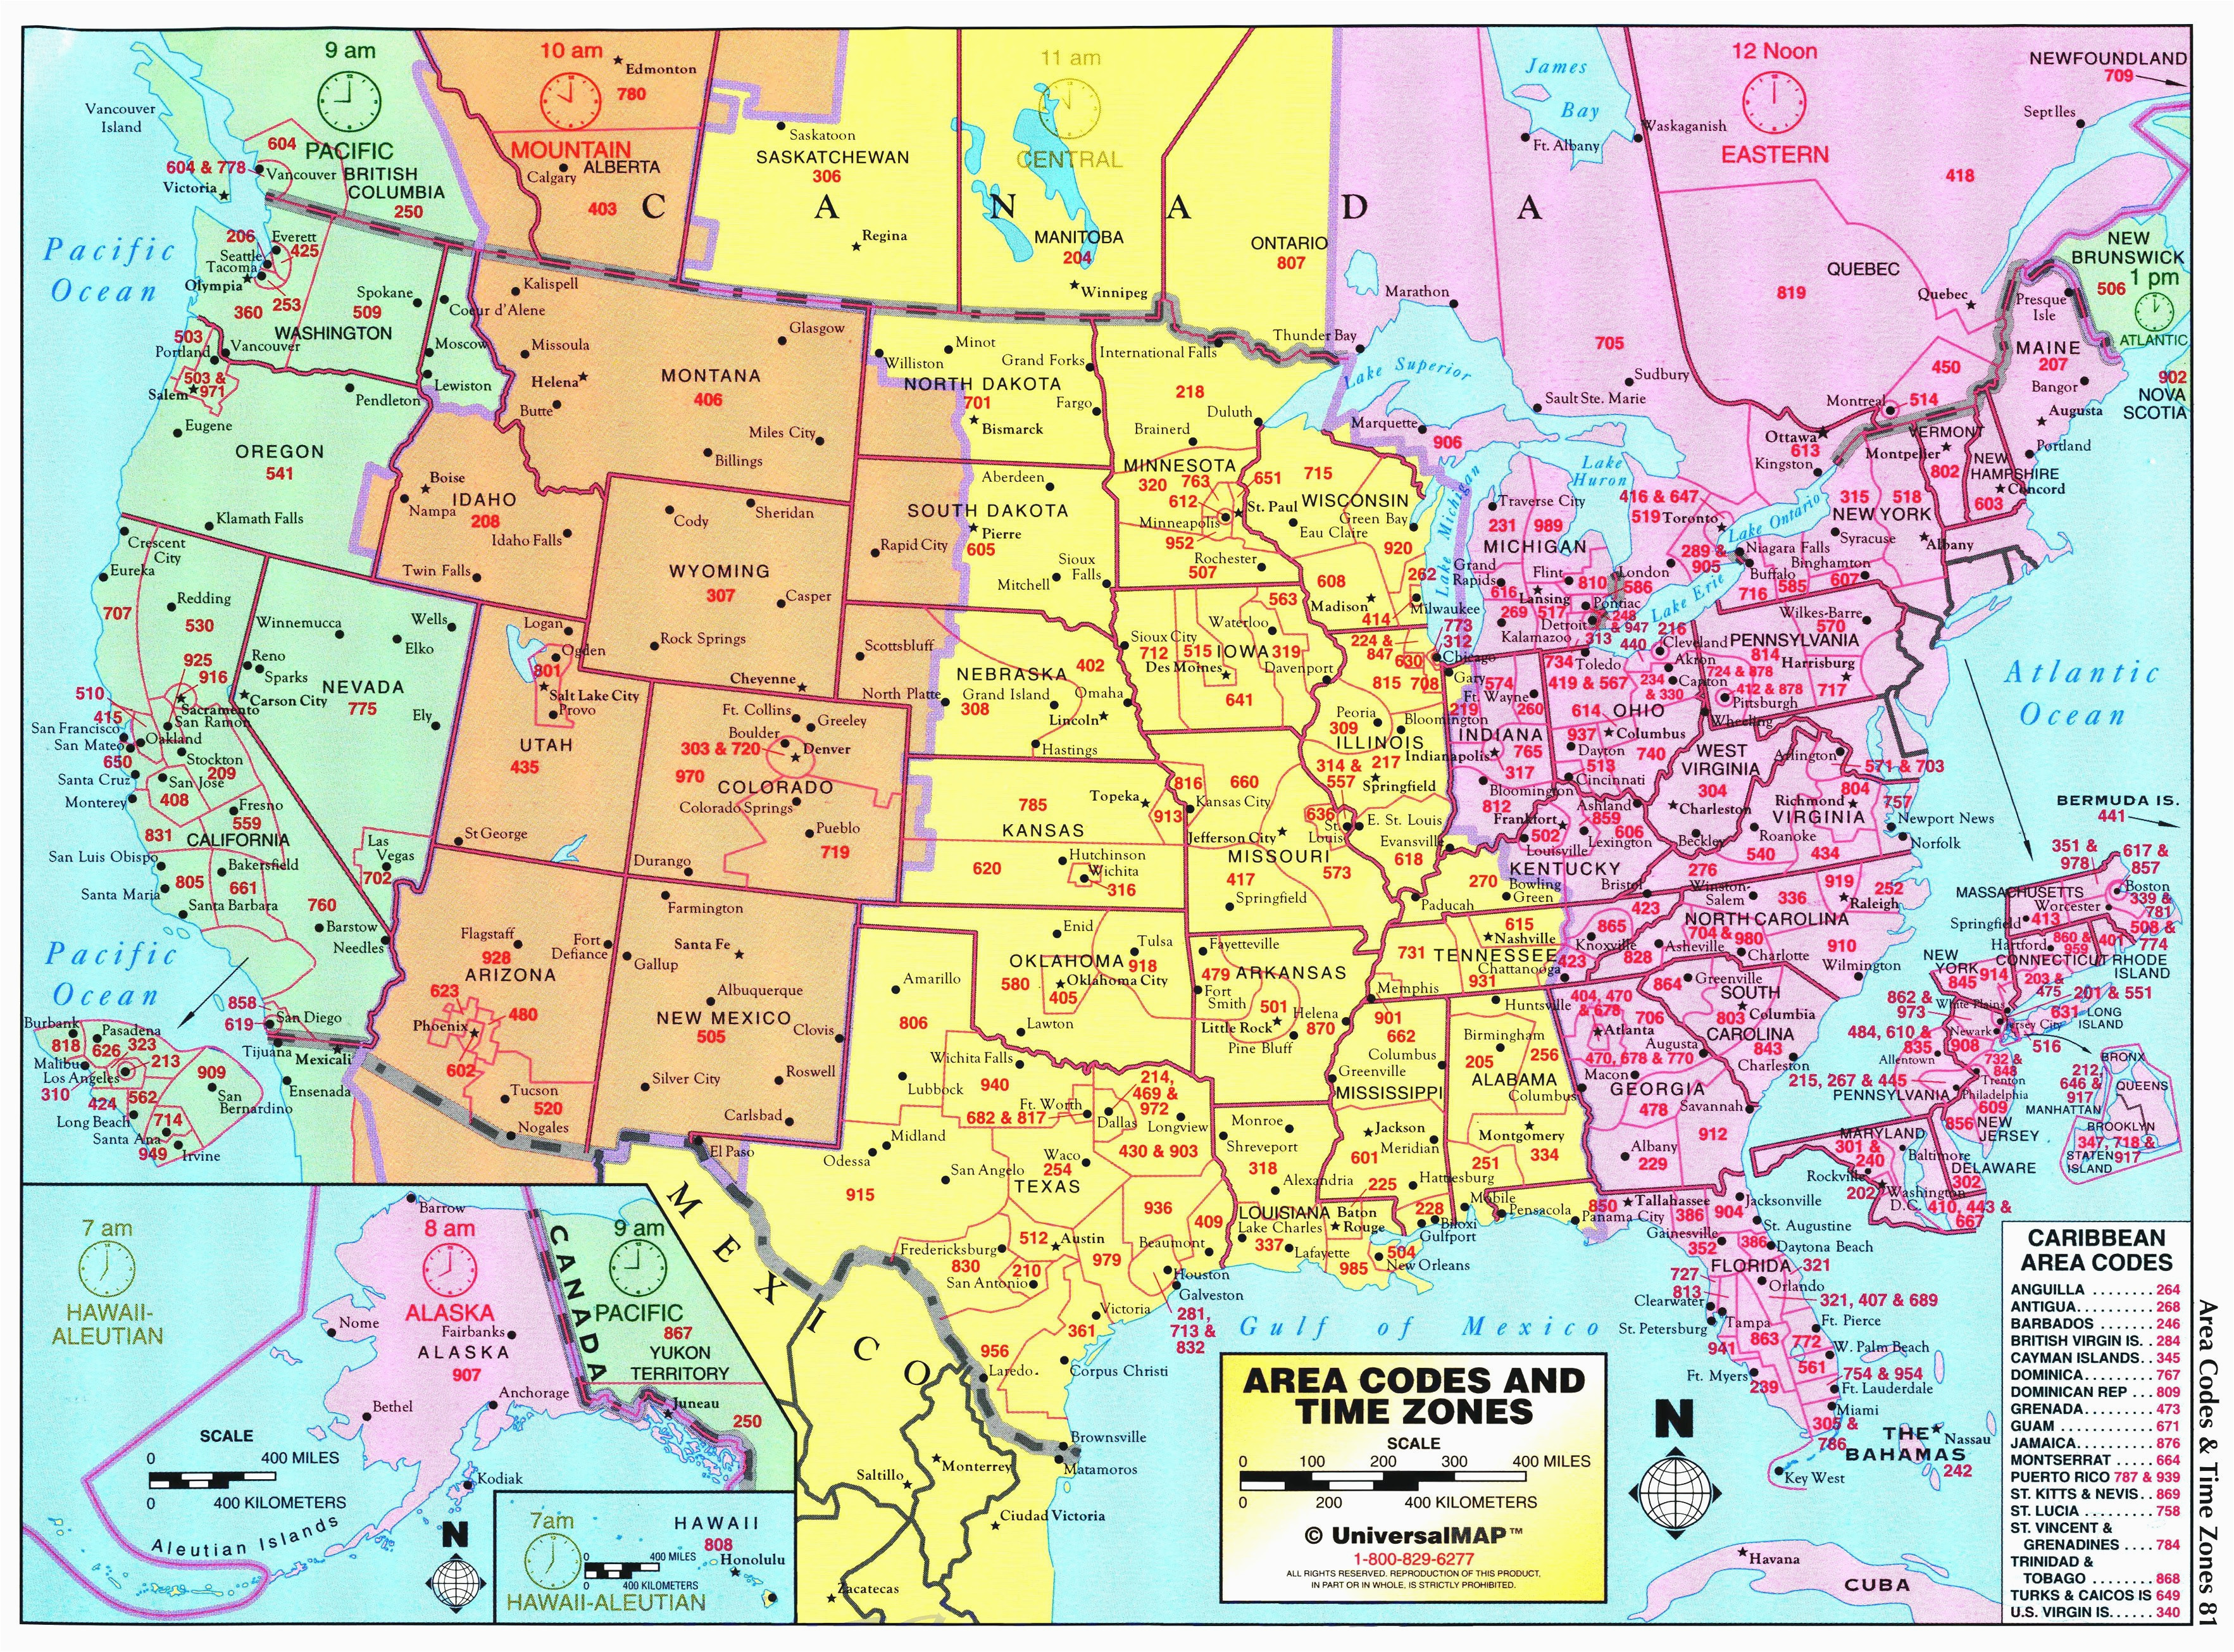 Savannah Georgia City Map United States Map orlando Florida ... on montana and cities map, italy and cities map, united states and canada flags, canadian provinces and cities map,